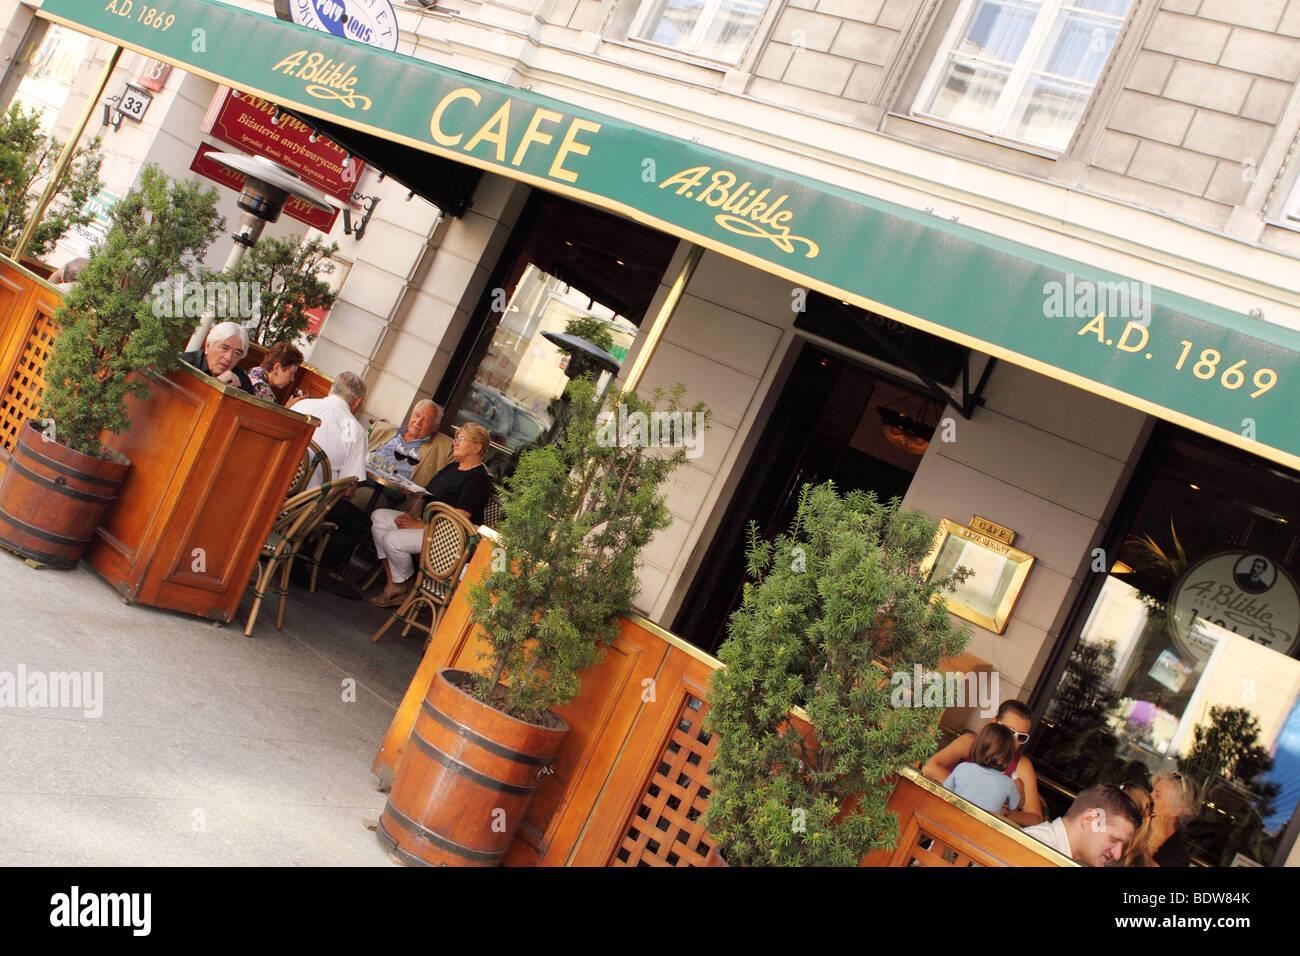 Warsaw the A Blikle cafe and cake house on Ul Ulica Nowy Swiat Warsaw Poland - Stock Image